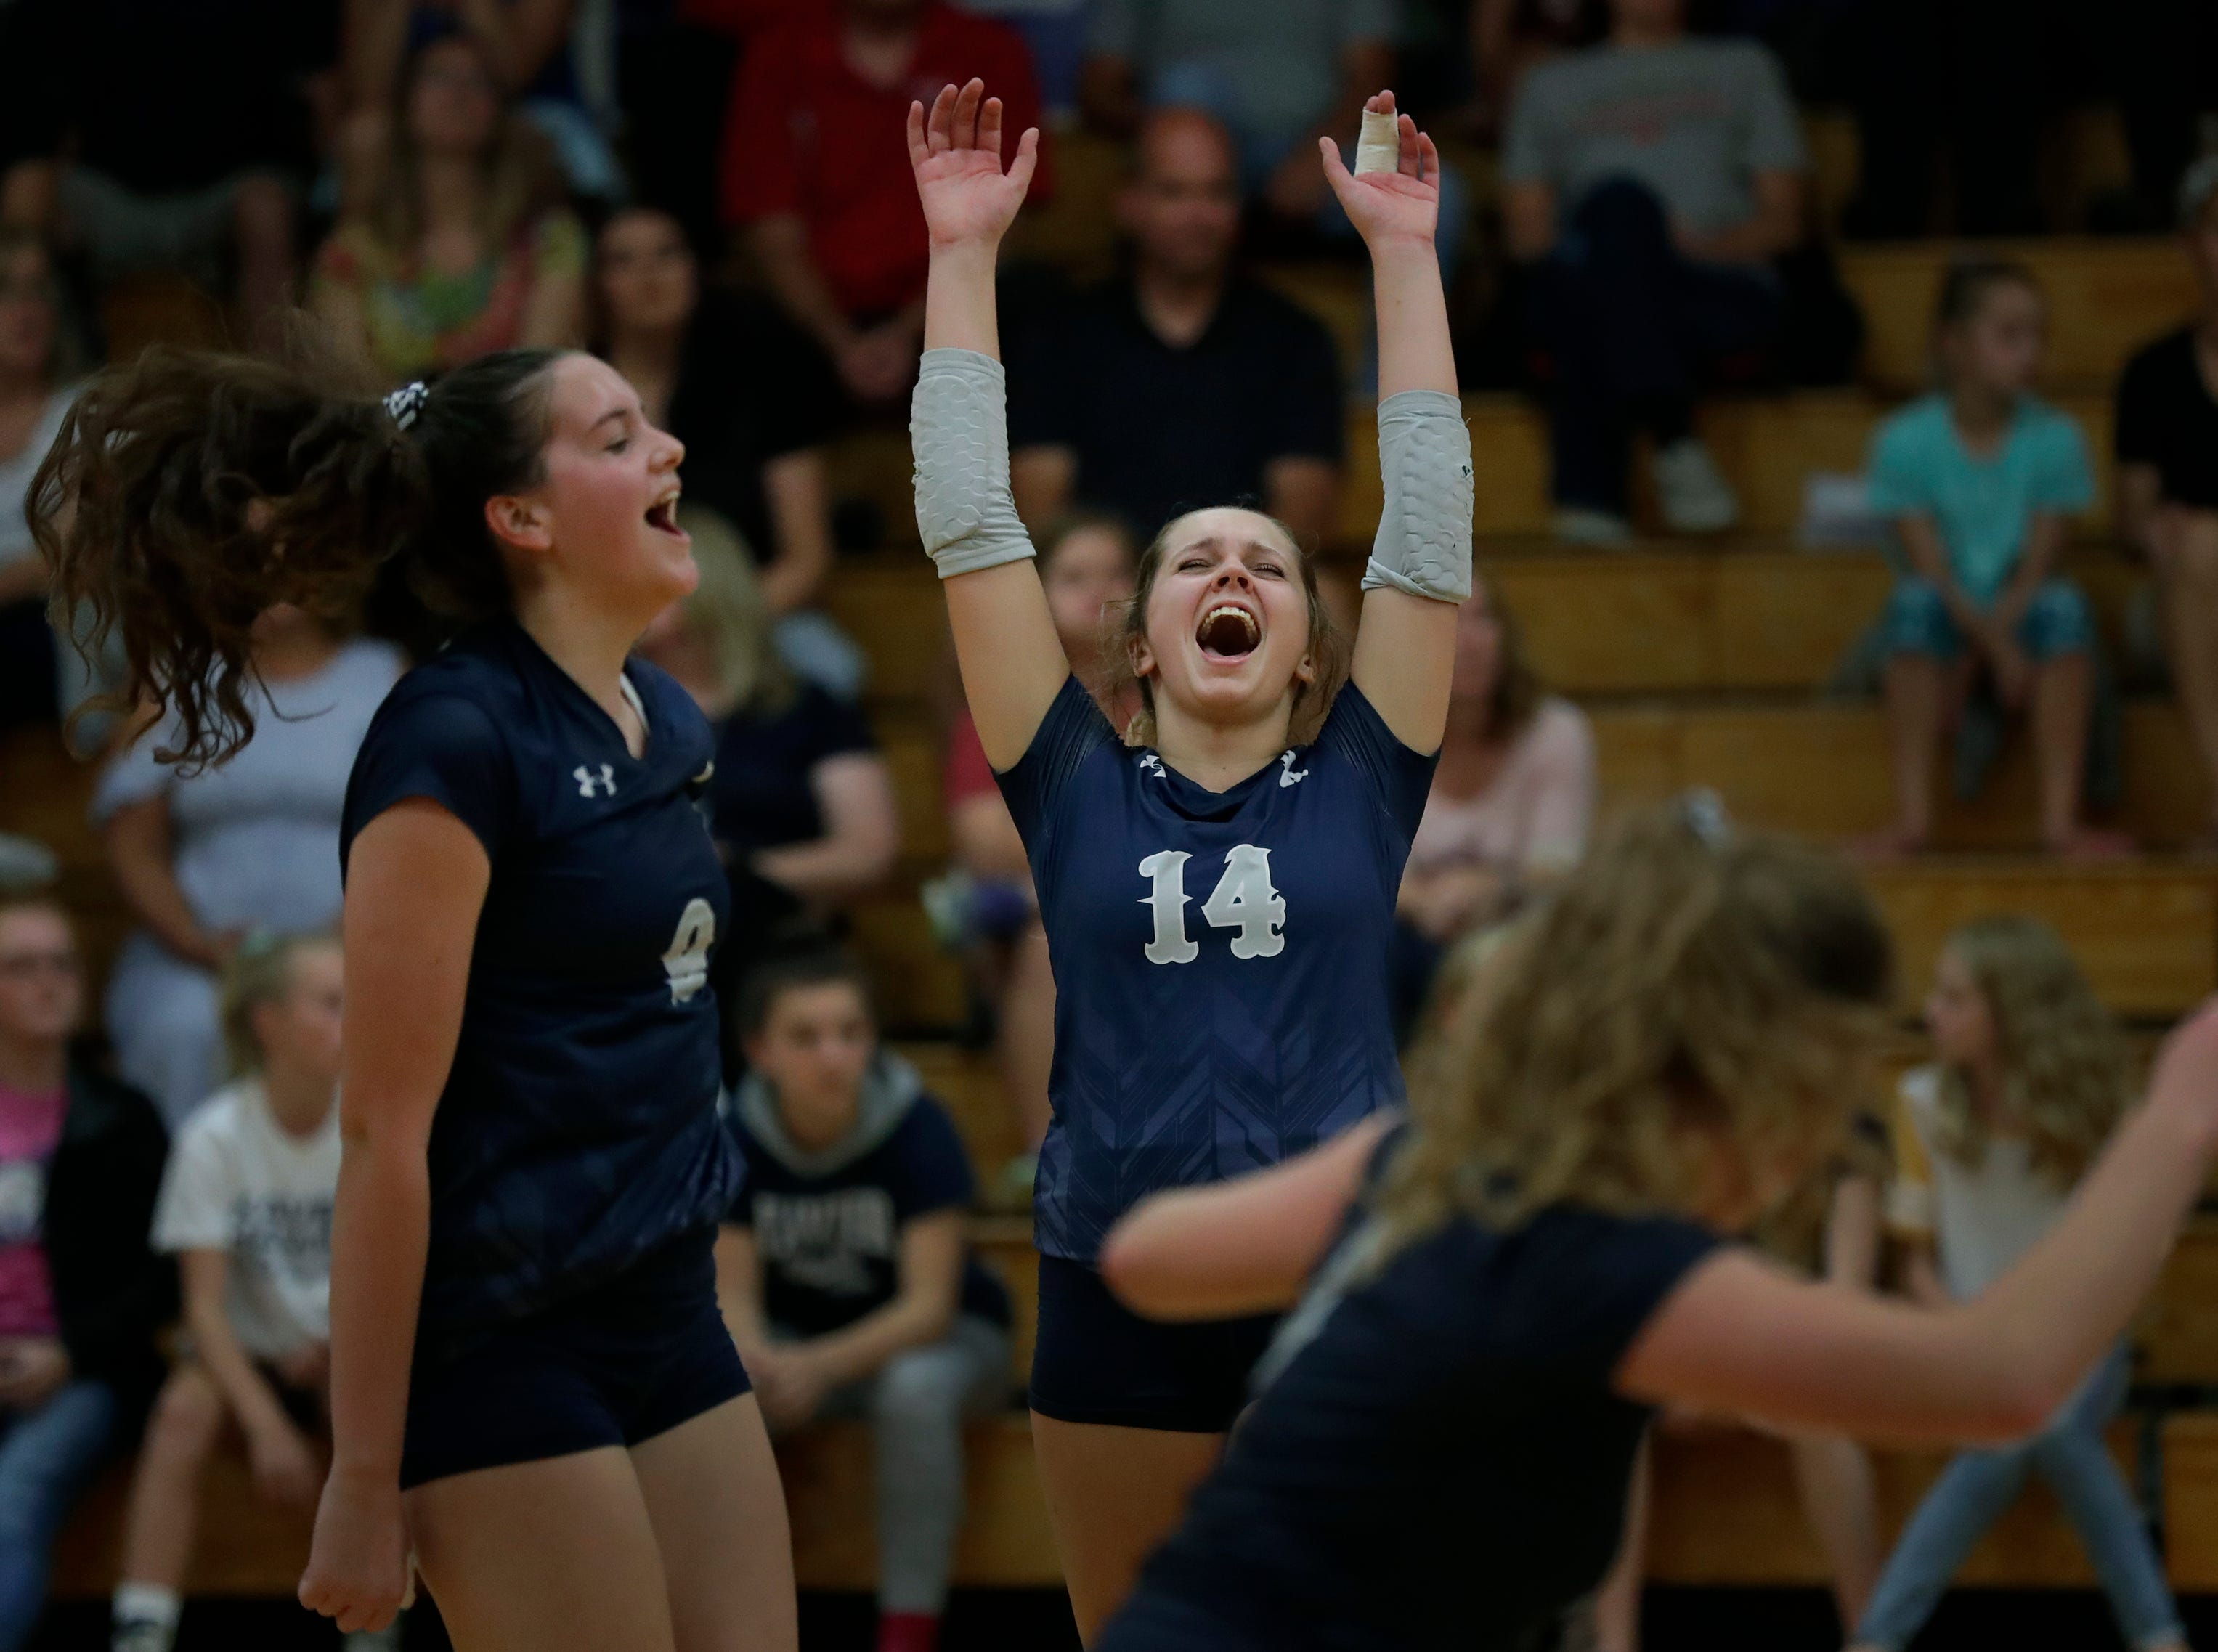 Xavier High School's Gabby Murray (9), Catherine Adair (14) and Emma Vosters (5) celebrate winning a point against New London High School during their girls volleyball match Thursday, Sept. 13, 2018, in Appleton, Wis. 